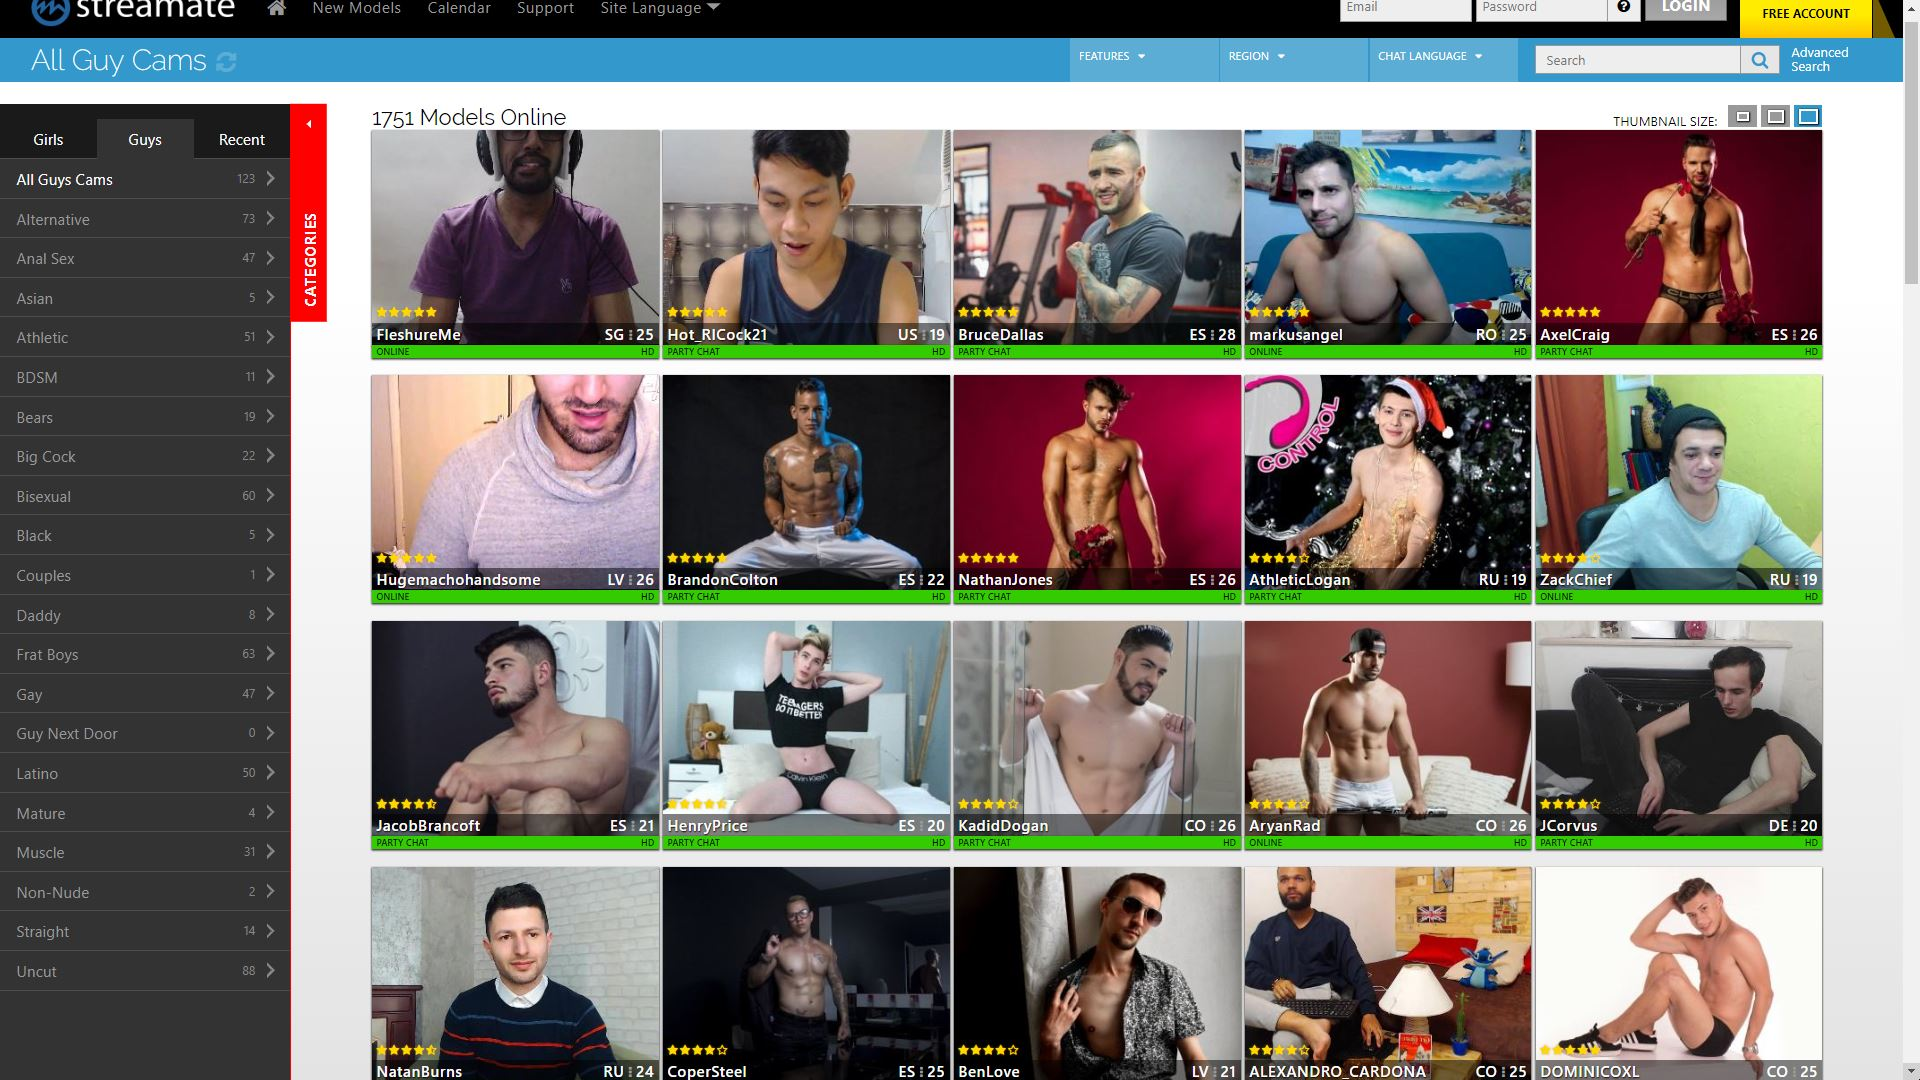 Streamate All Guys Cam